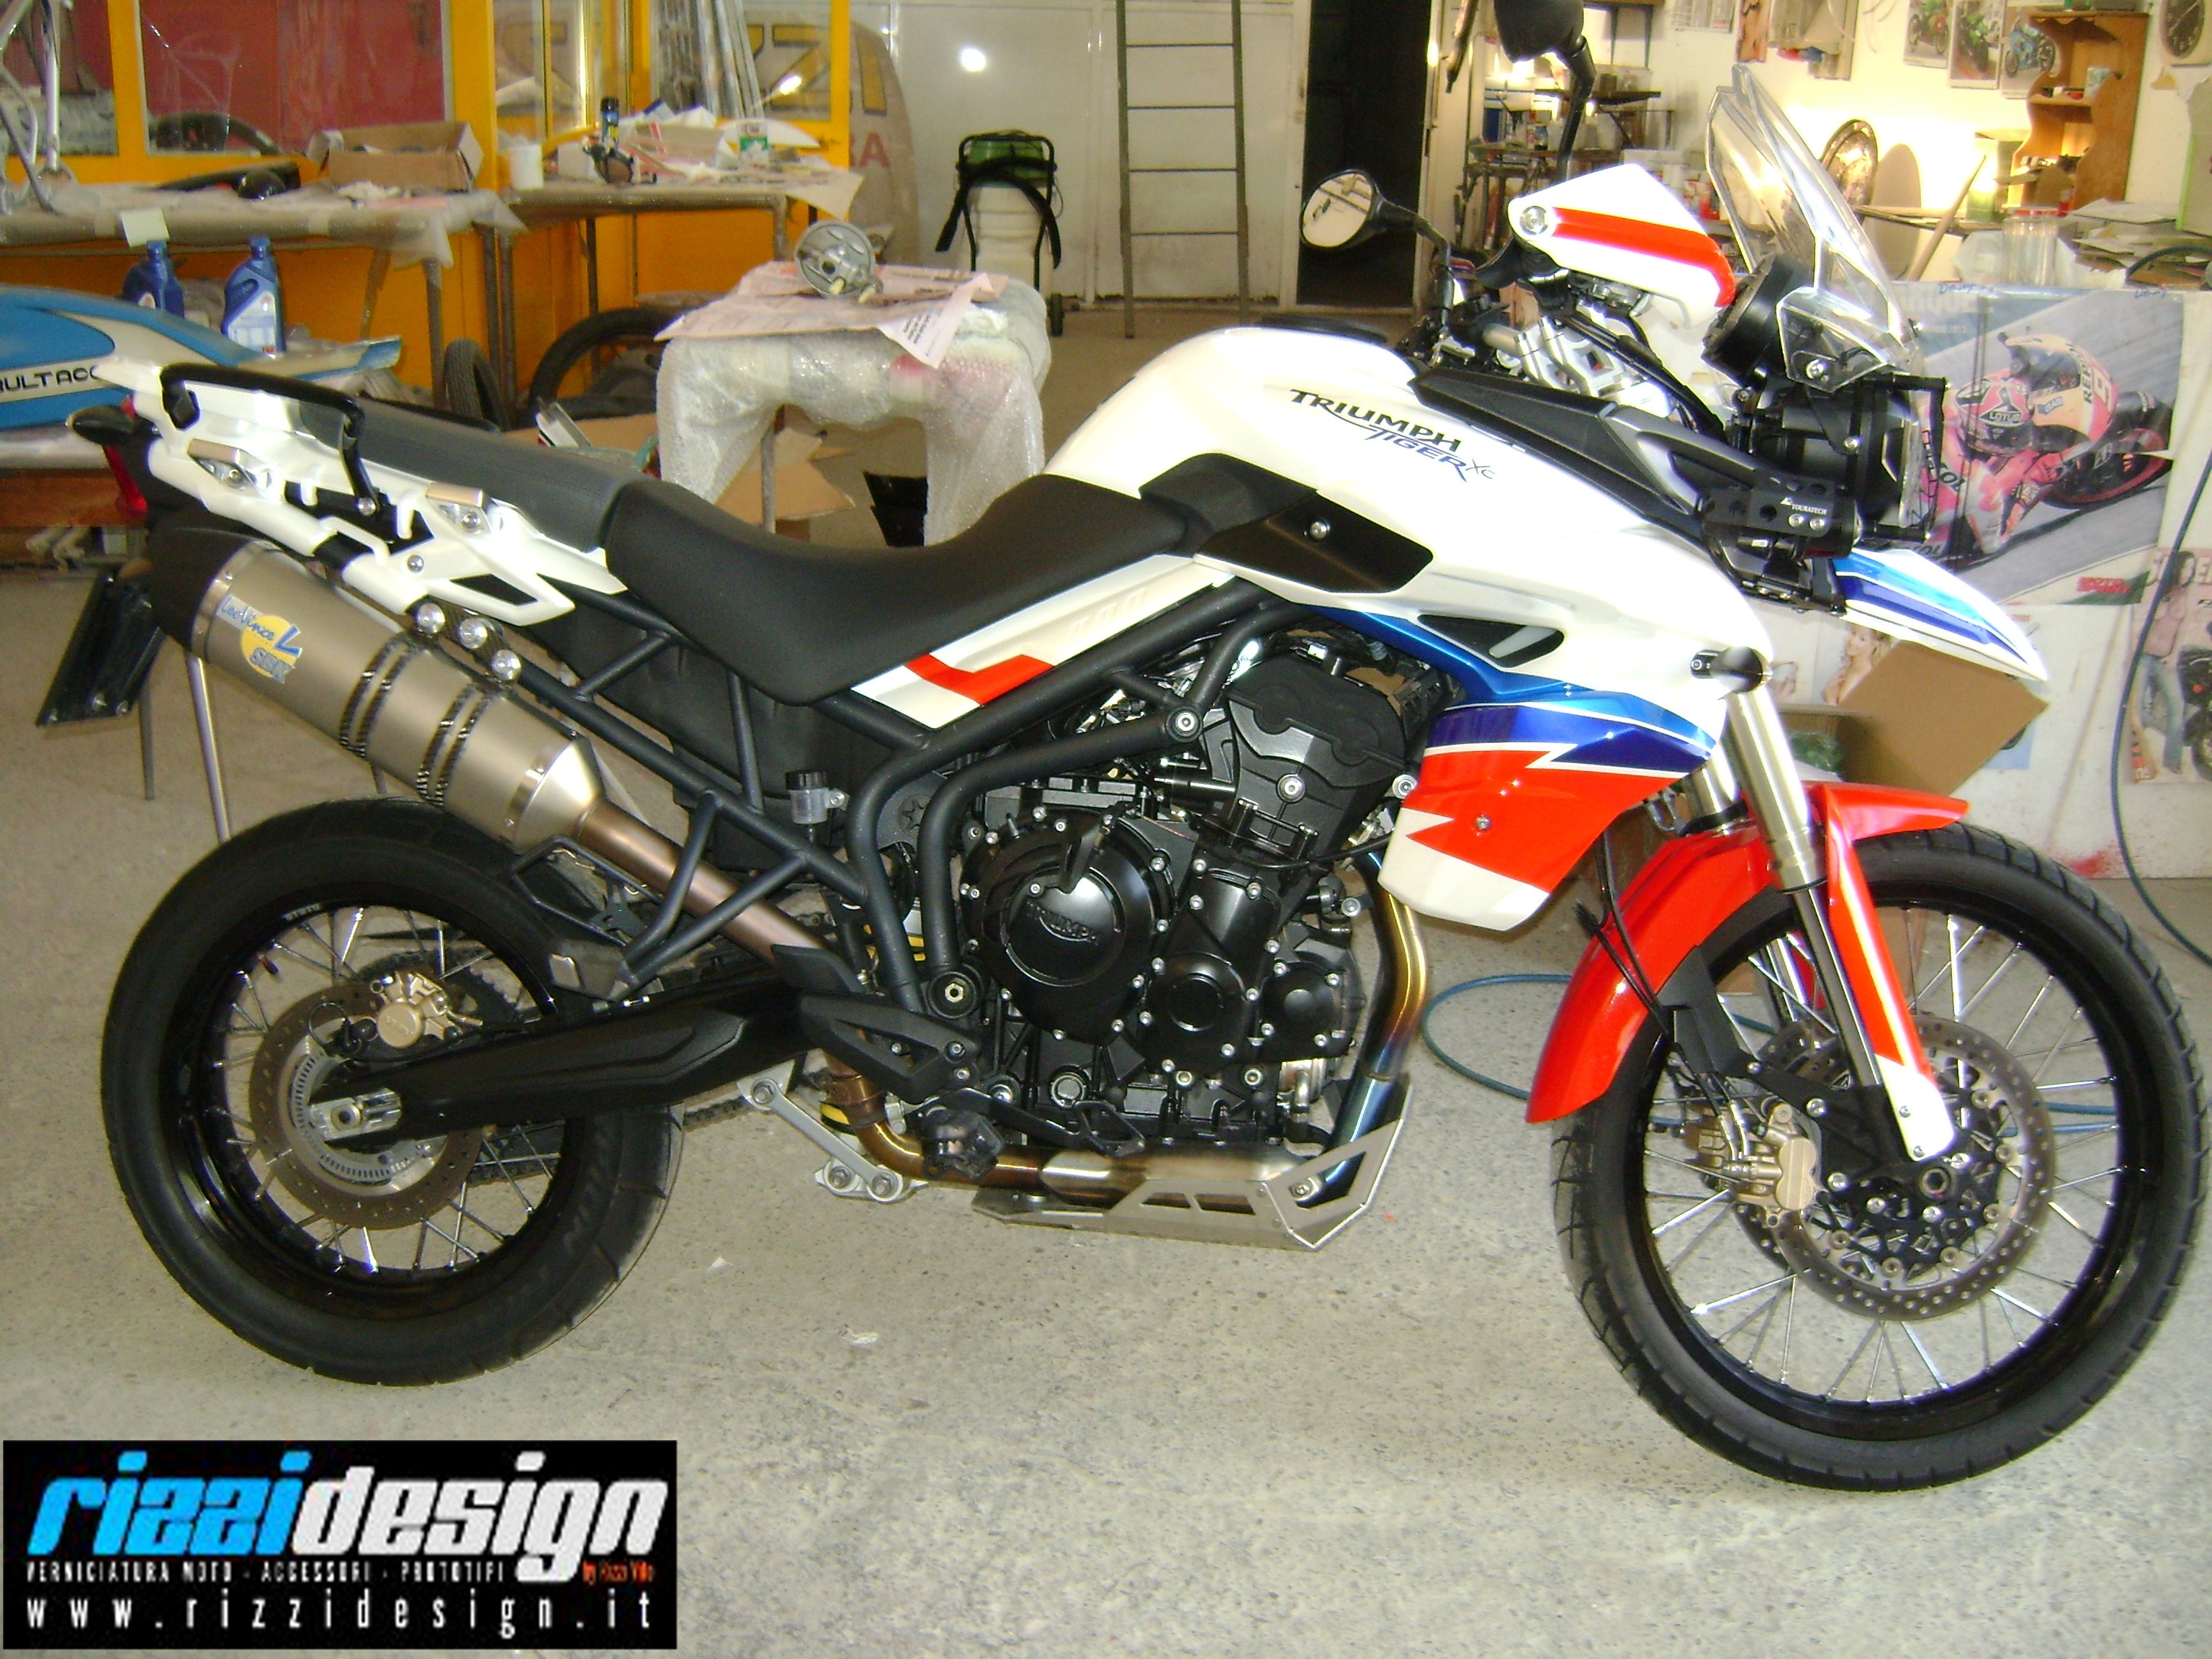 TRIUMPH TIGER 800 colorazione #RIZZIDESIGN!